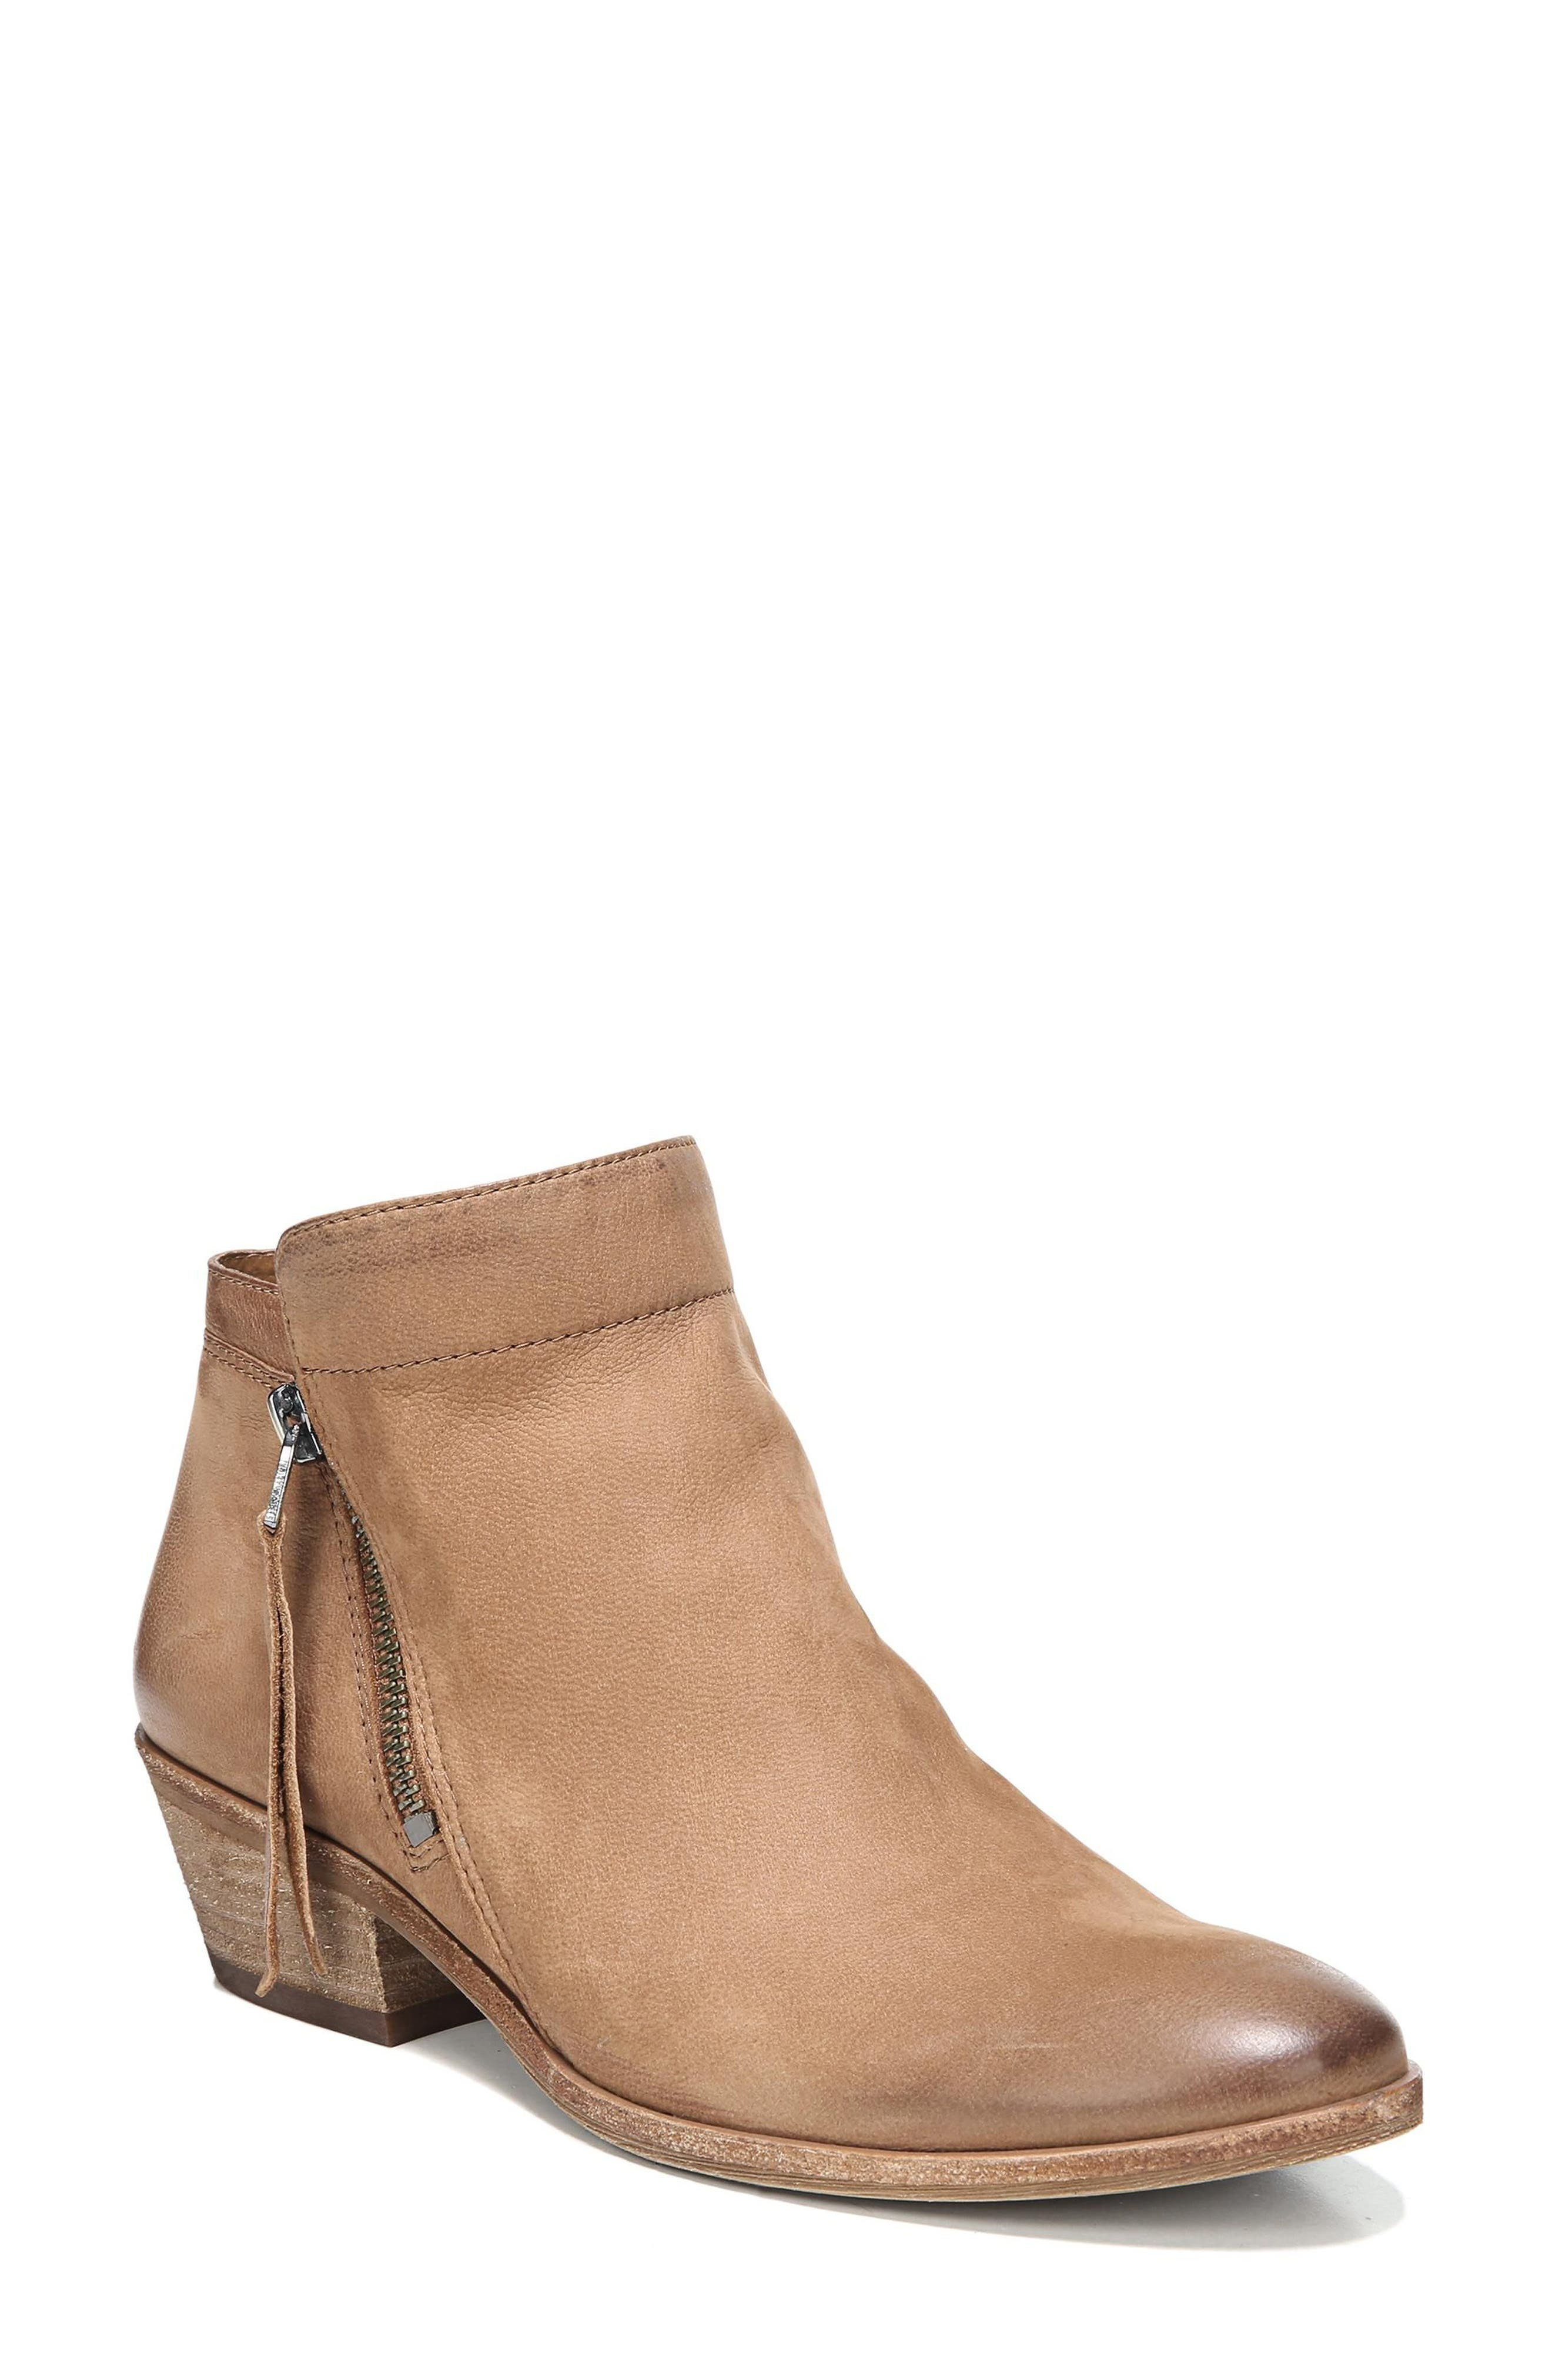 Packer Bootie,                             Main thumbnail 1, color,                             Deep Saddle Leather